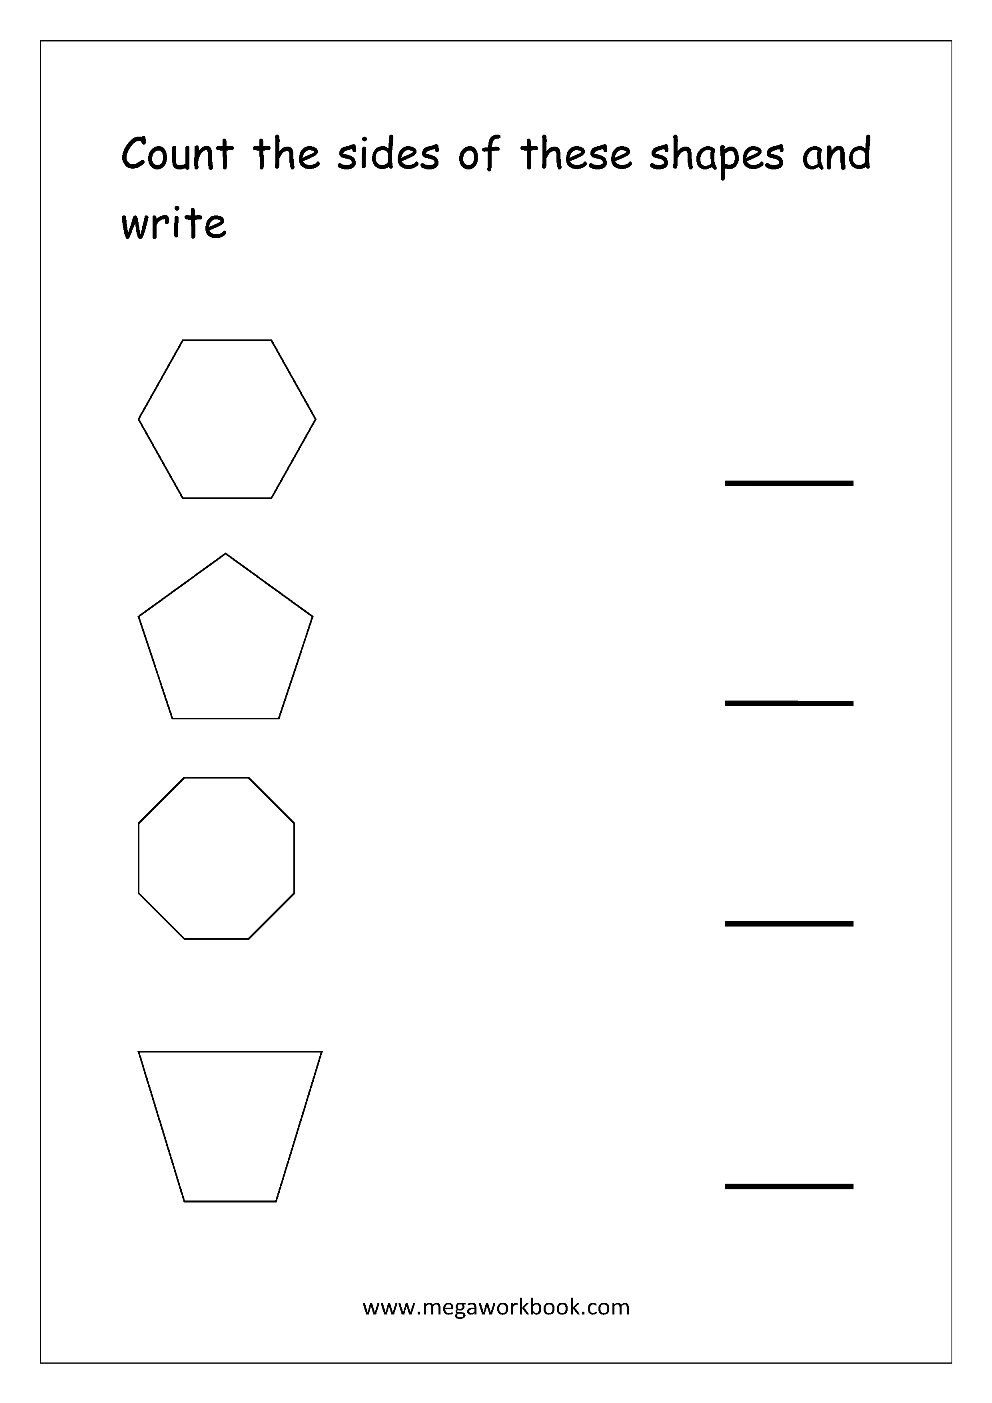 free shapes worksheets - counting the shapes